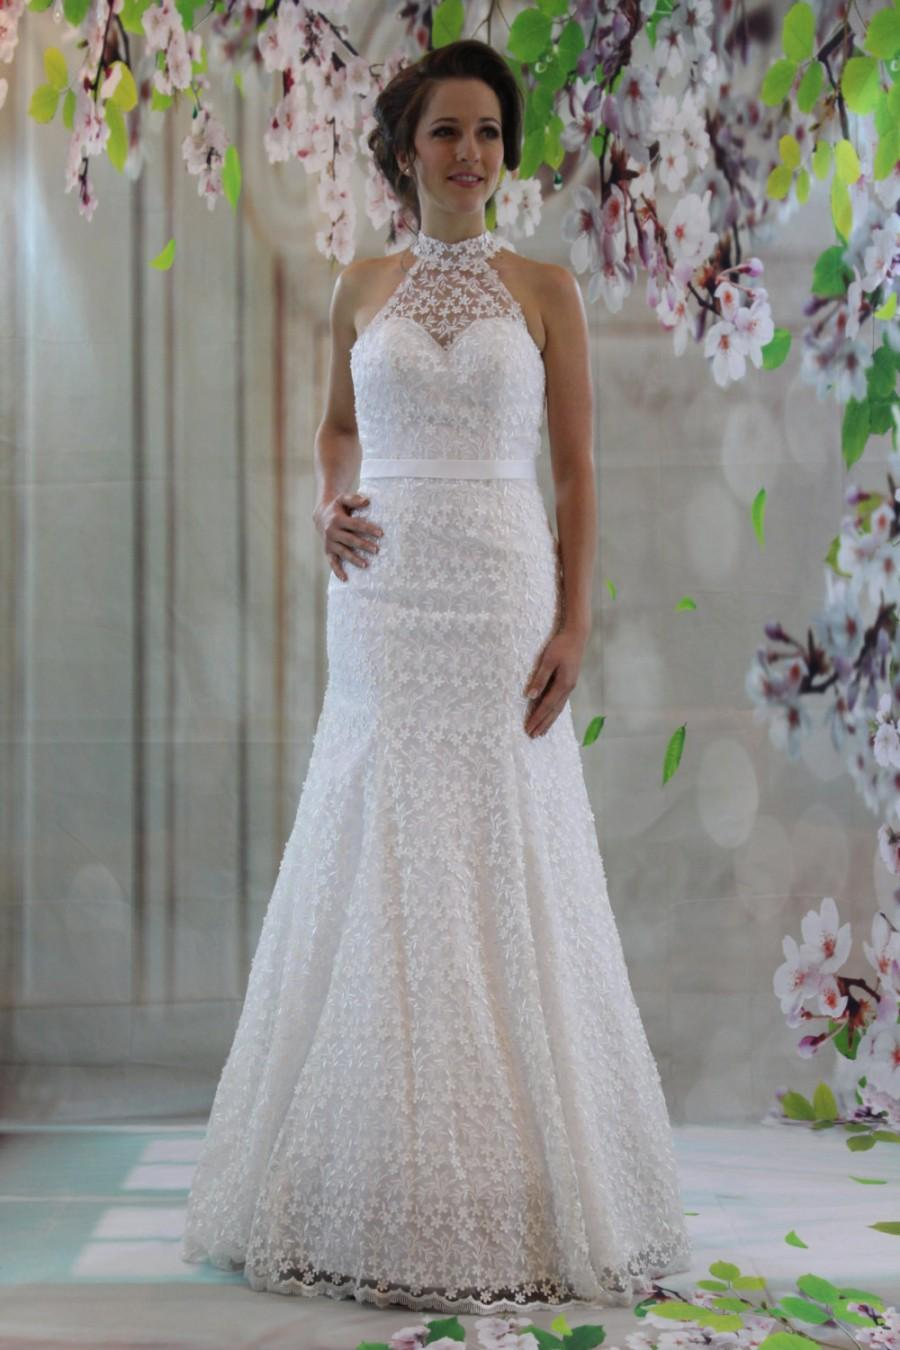 Elegant Sweetheart High Neck Bridal Gown Full Lace Modified Aline Wedding Dress 2593138